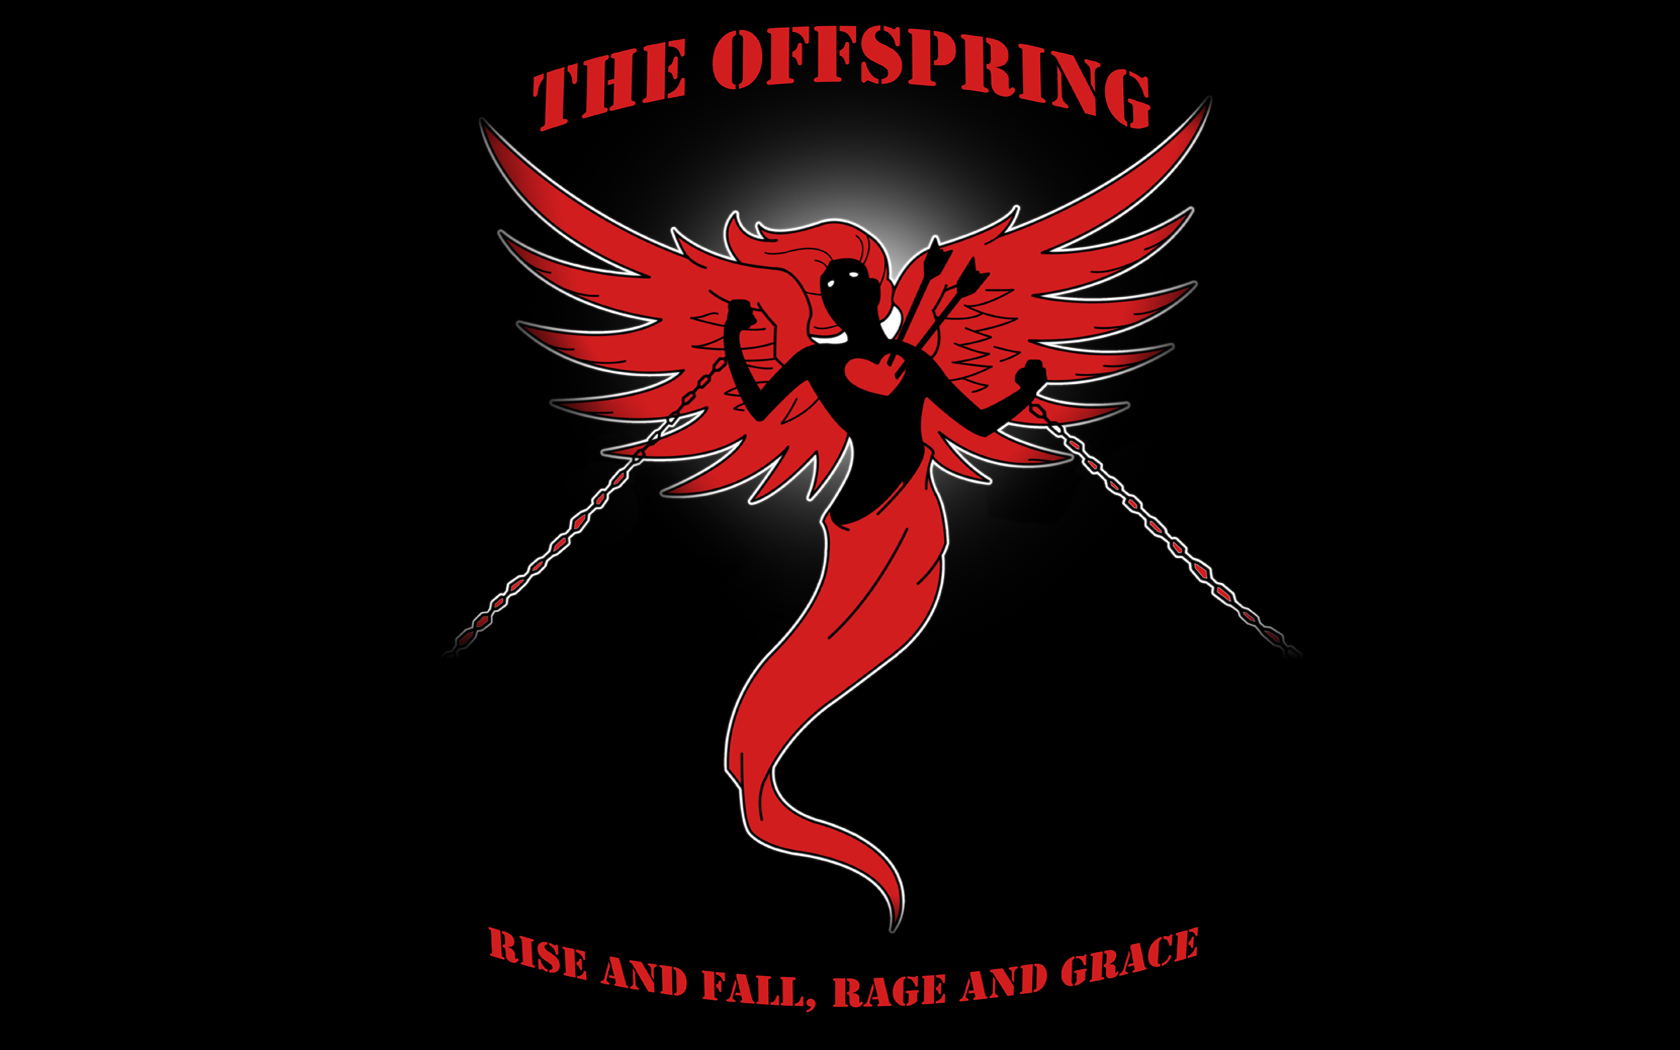 hd the offspring rfrg logo by fewes on deviantart